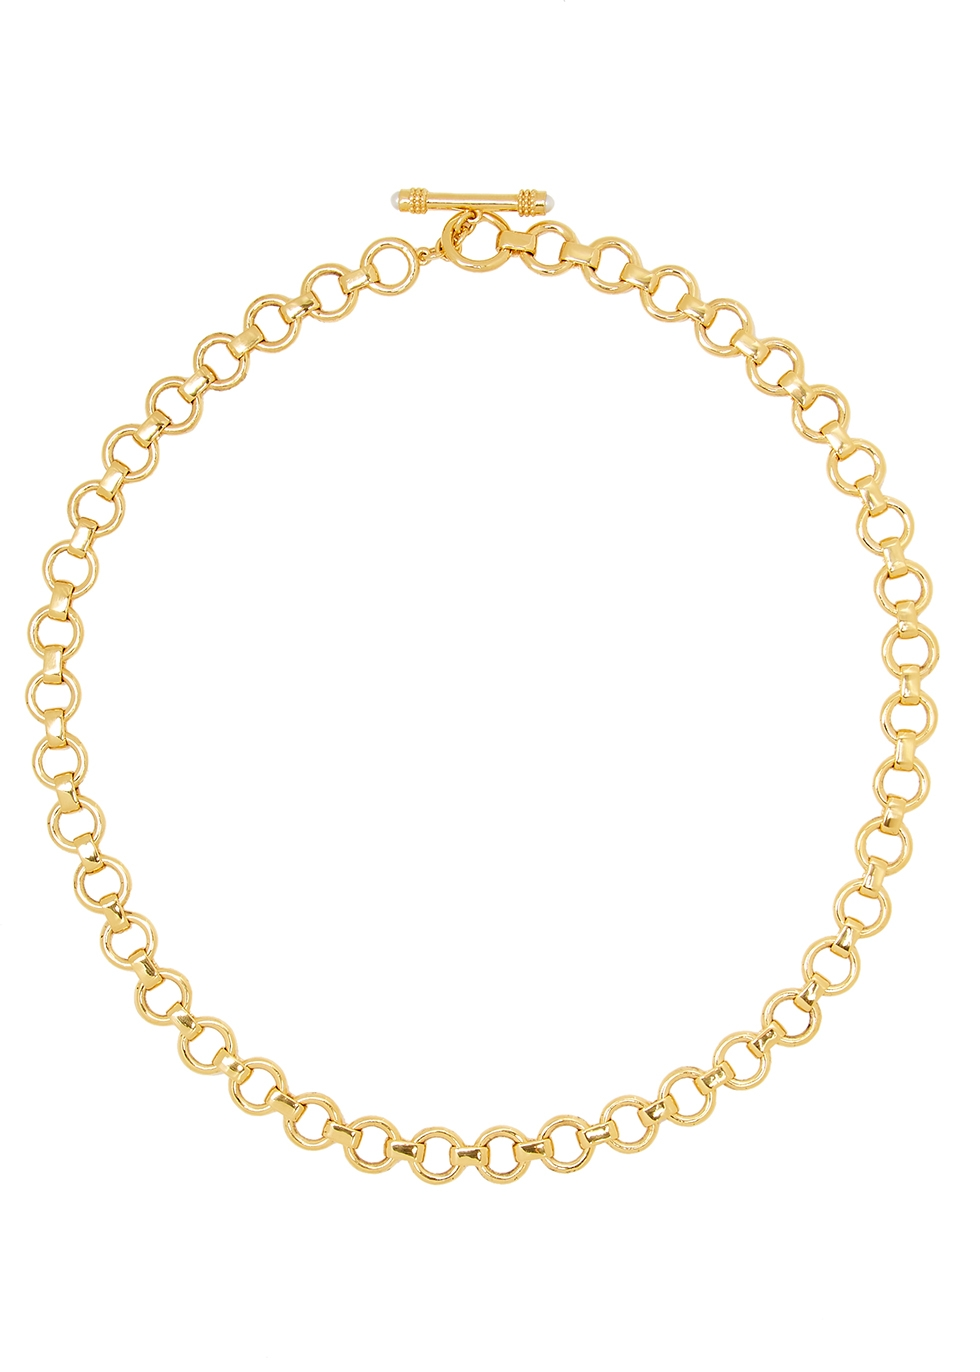 Baby Bea 18kt gold-plated necklace